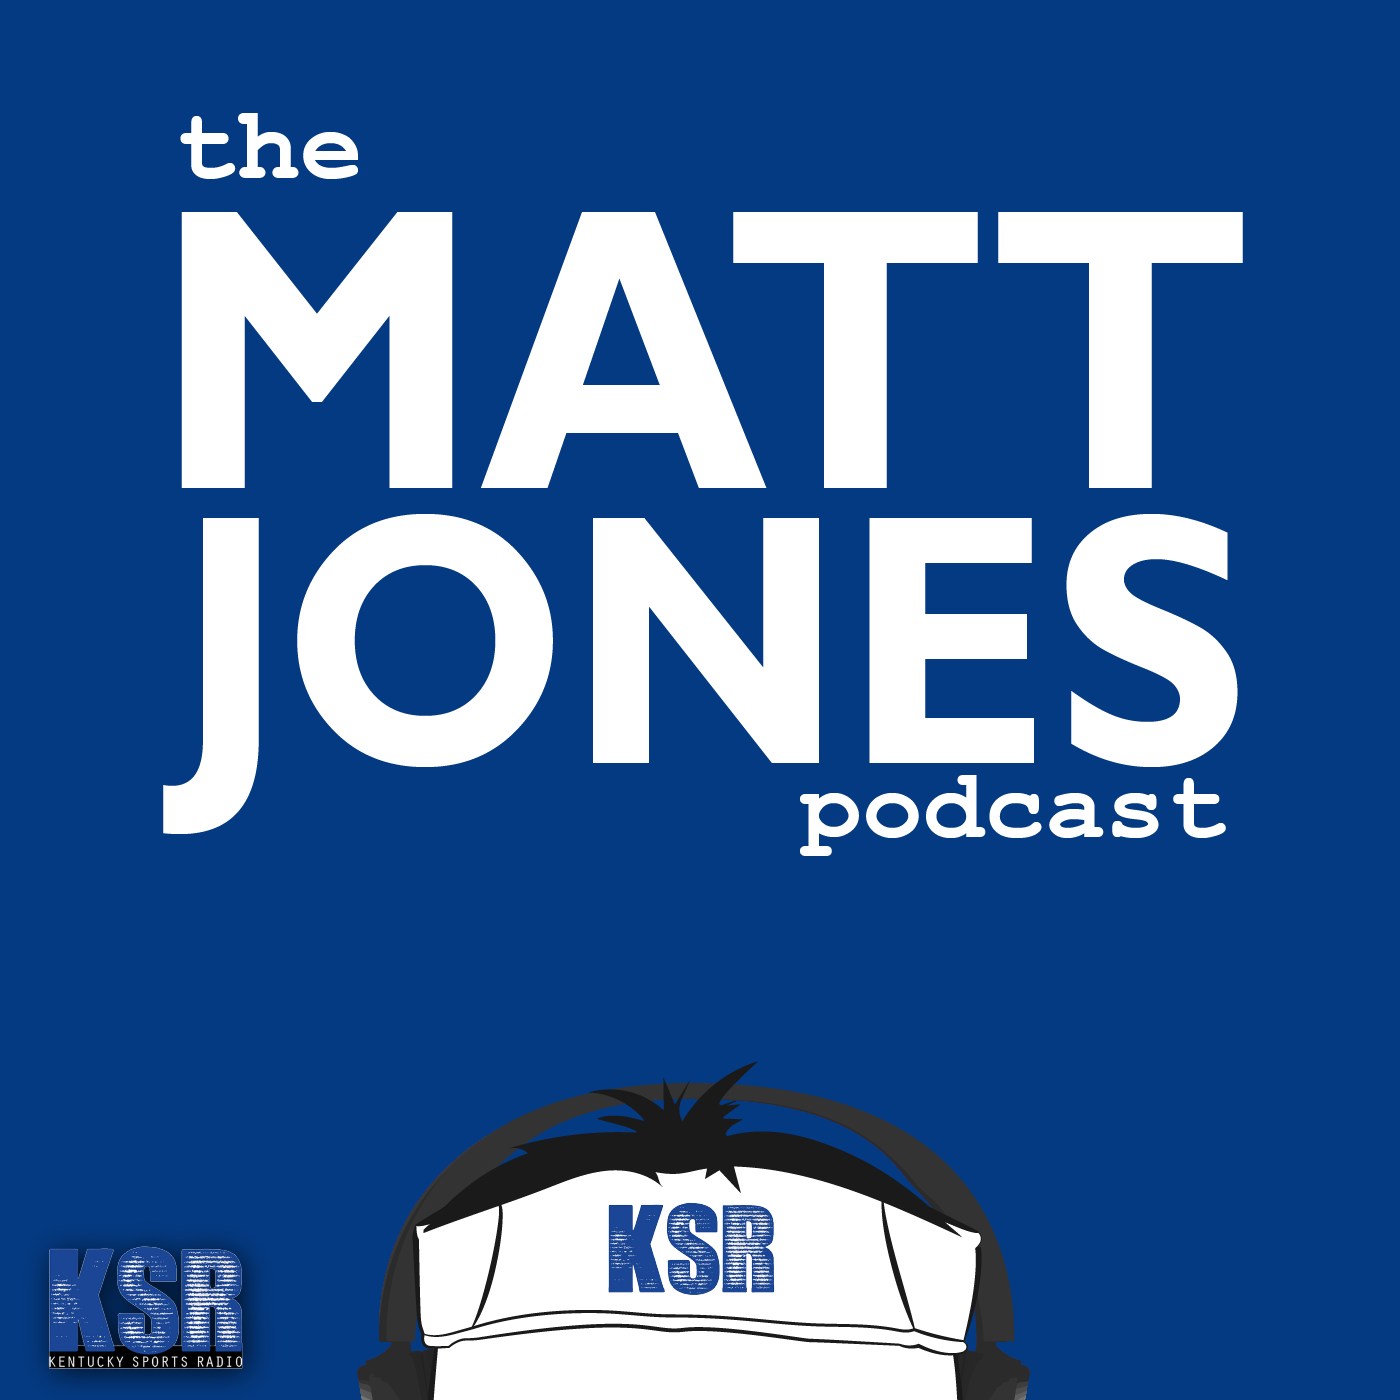 The Matt Jones Podcast